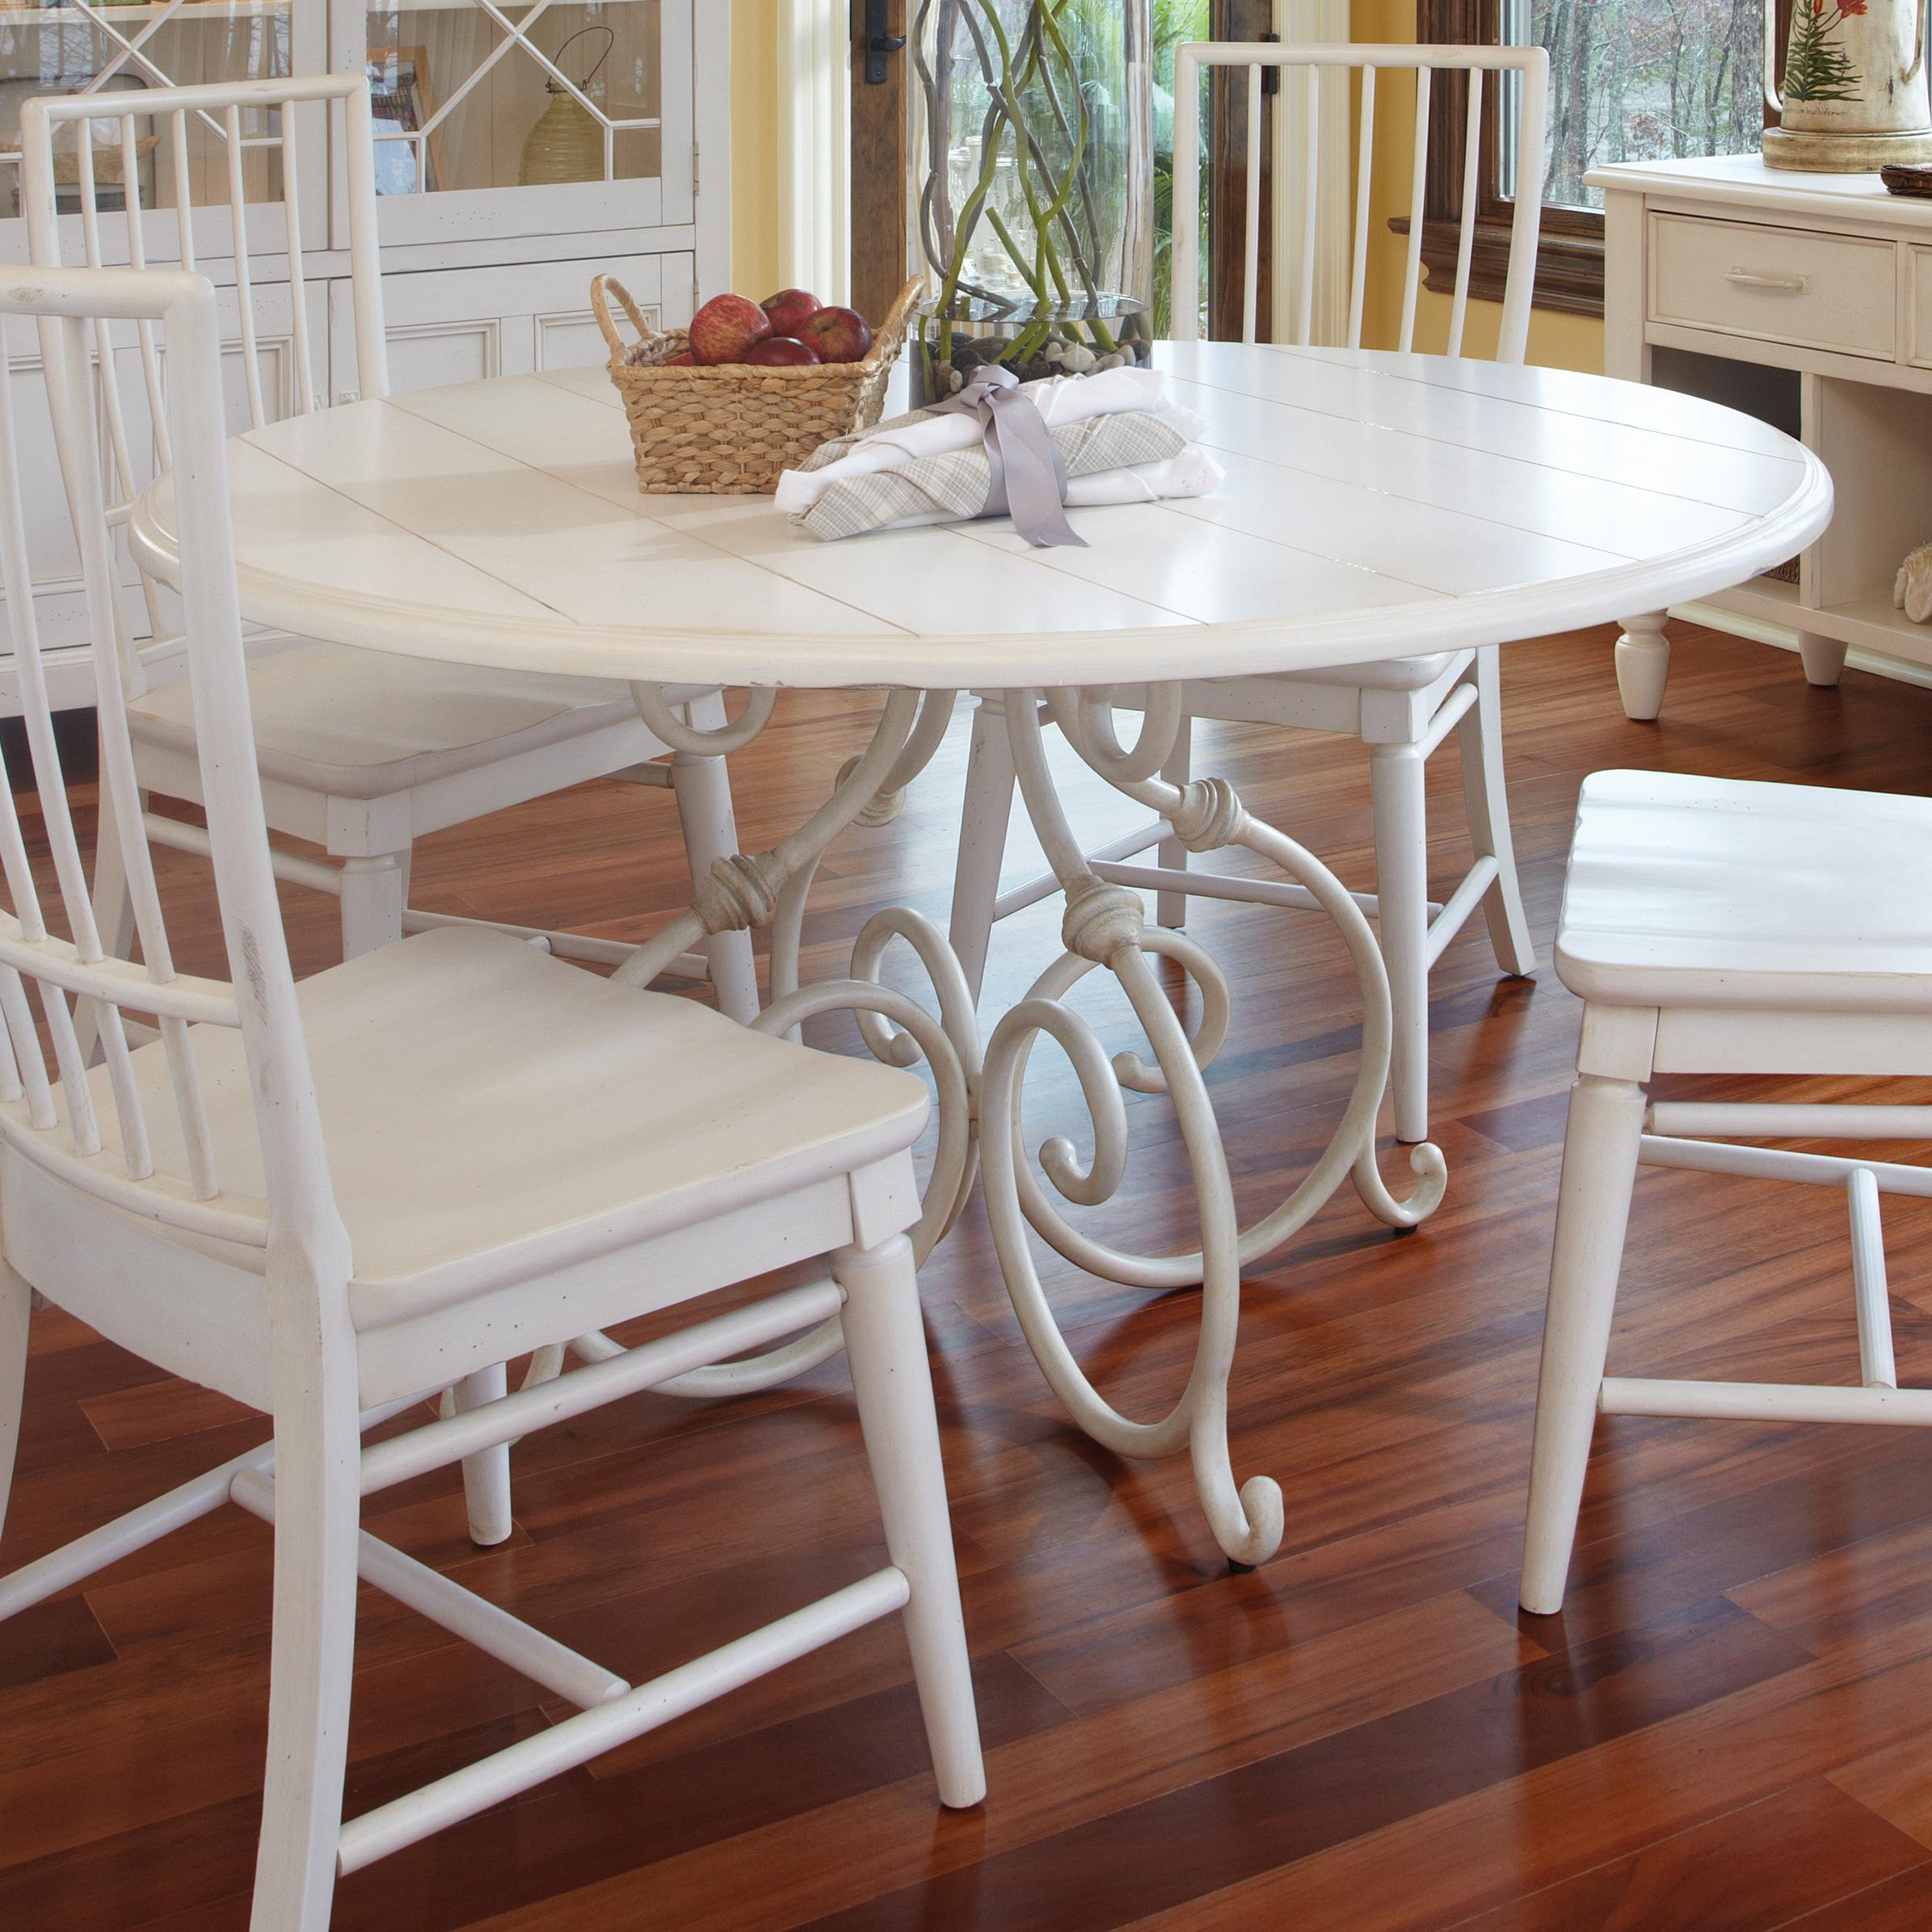 Easton Collection Sea Breeze Calabash 54'' Round White Dining Table - Item Number: 424-054 DRT